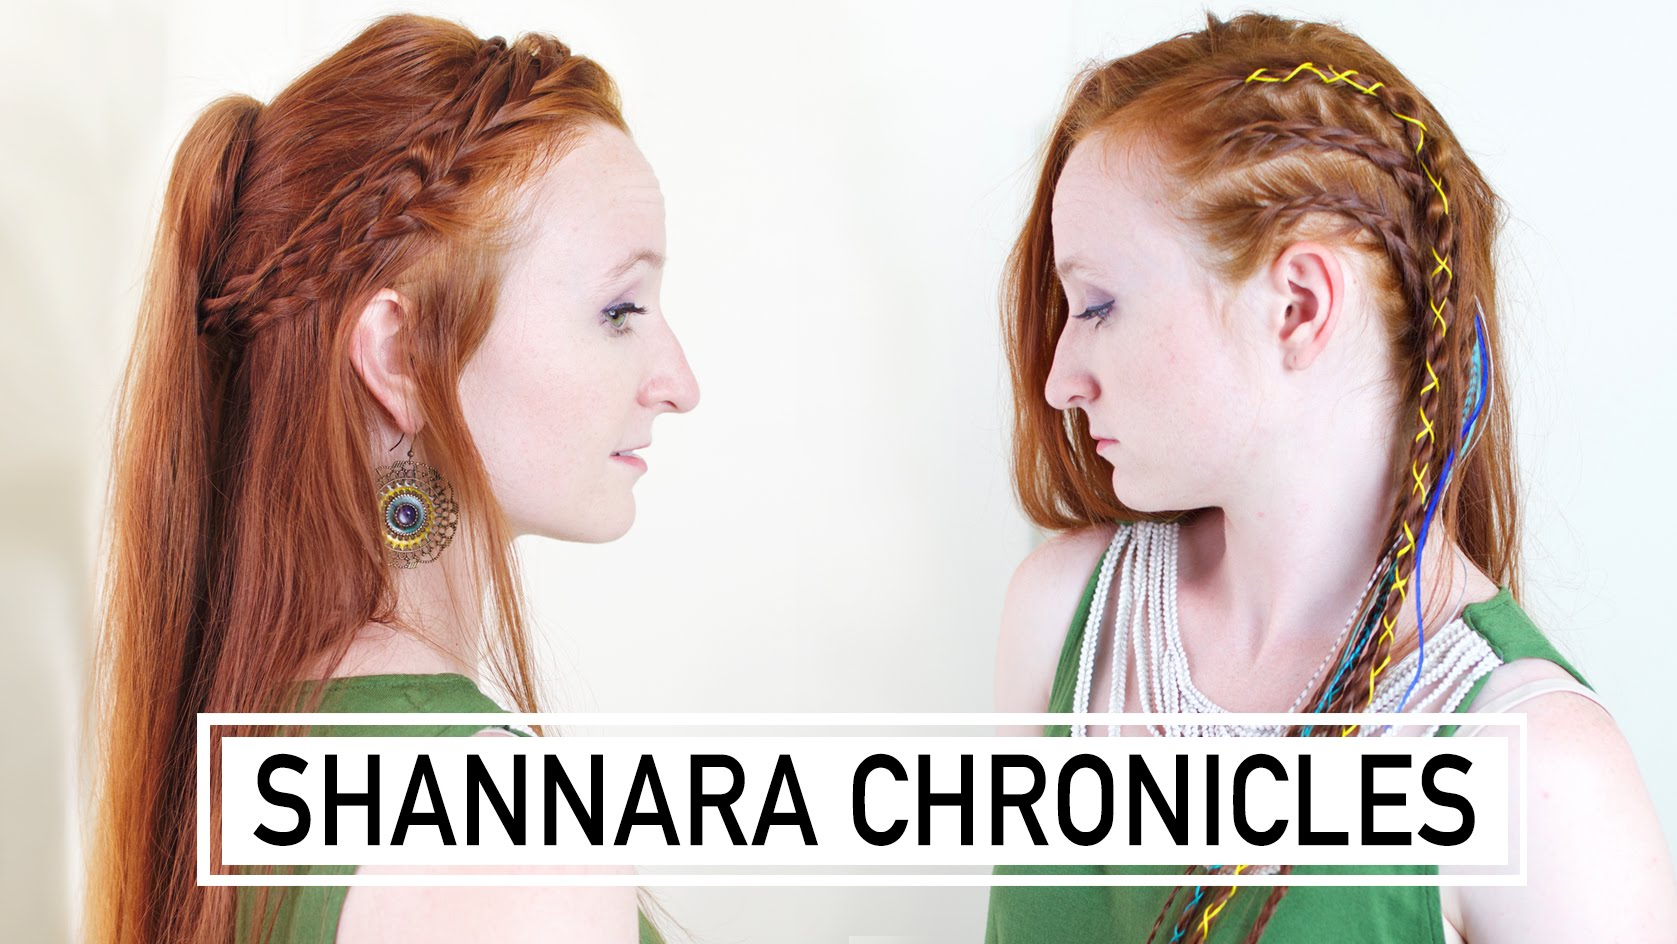 Hairstyles of the Shannara Chronicles